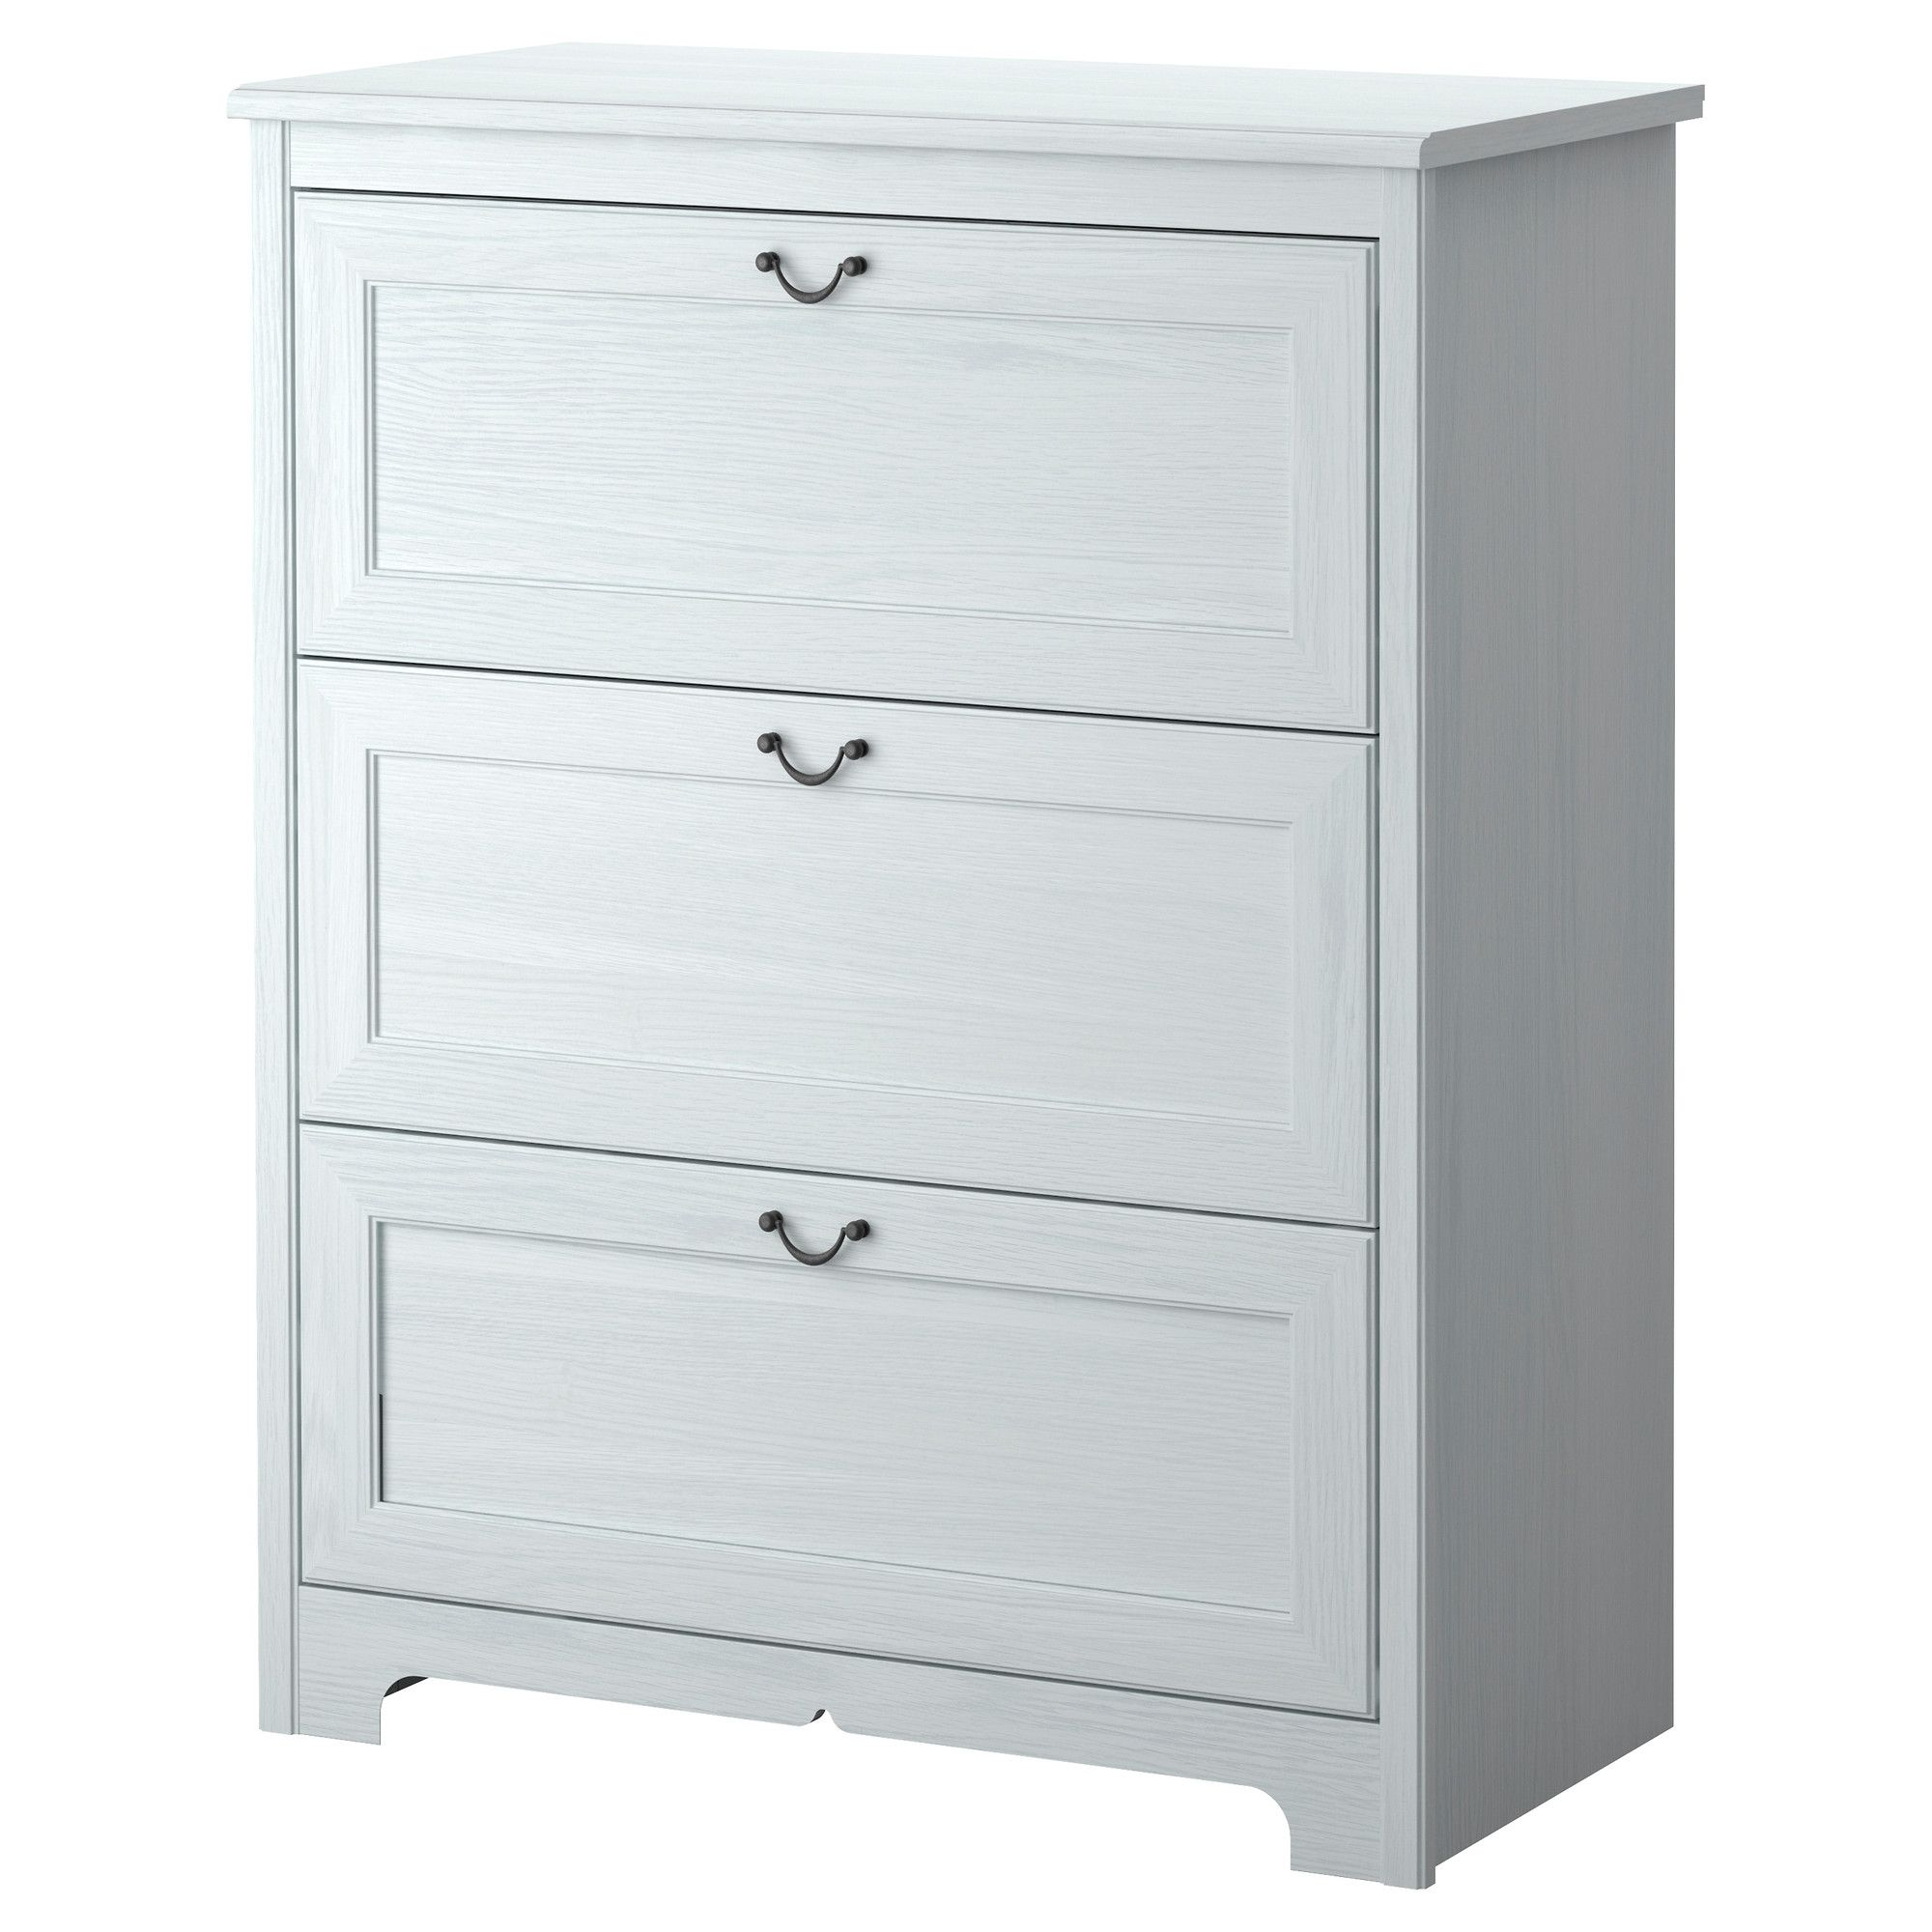 Ikea bedroom furniture chest of drawers - Aspelund 3 Drawer Chest Ikea Width 34 5 8 Depth 17